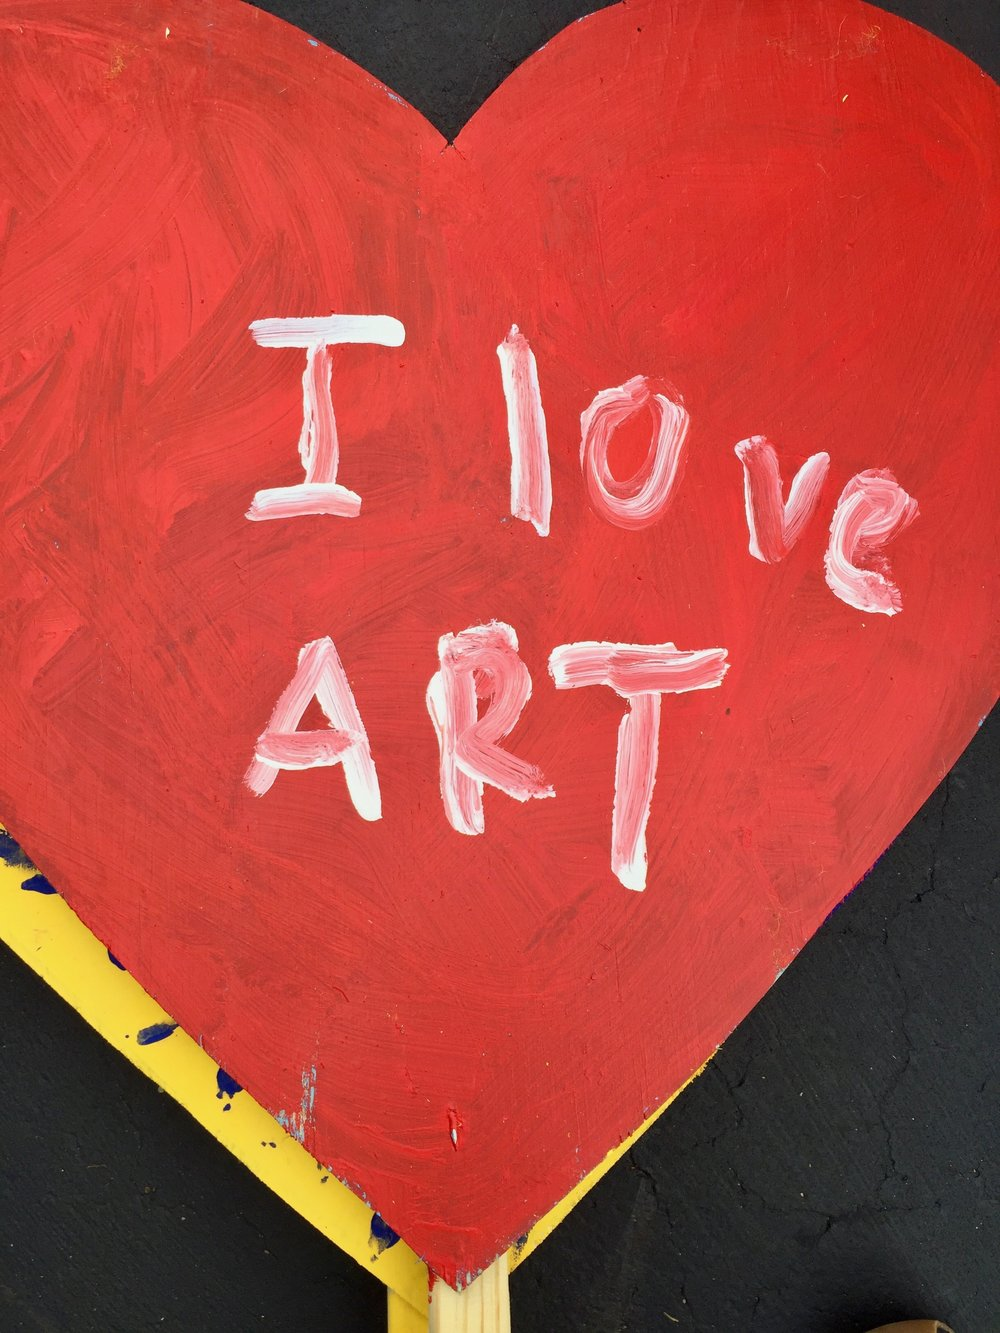 i-love-art-yard-heart.jpg